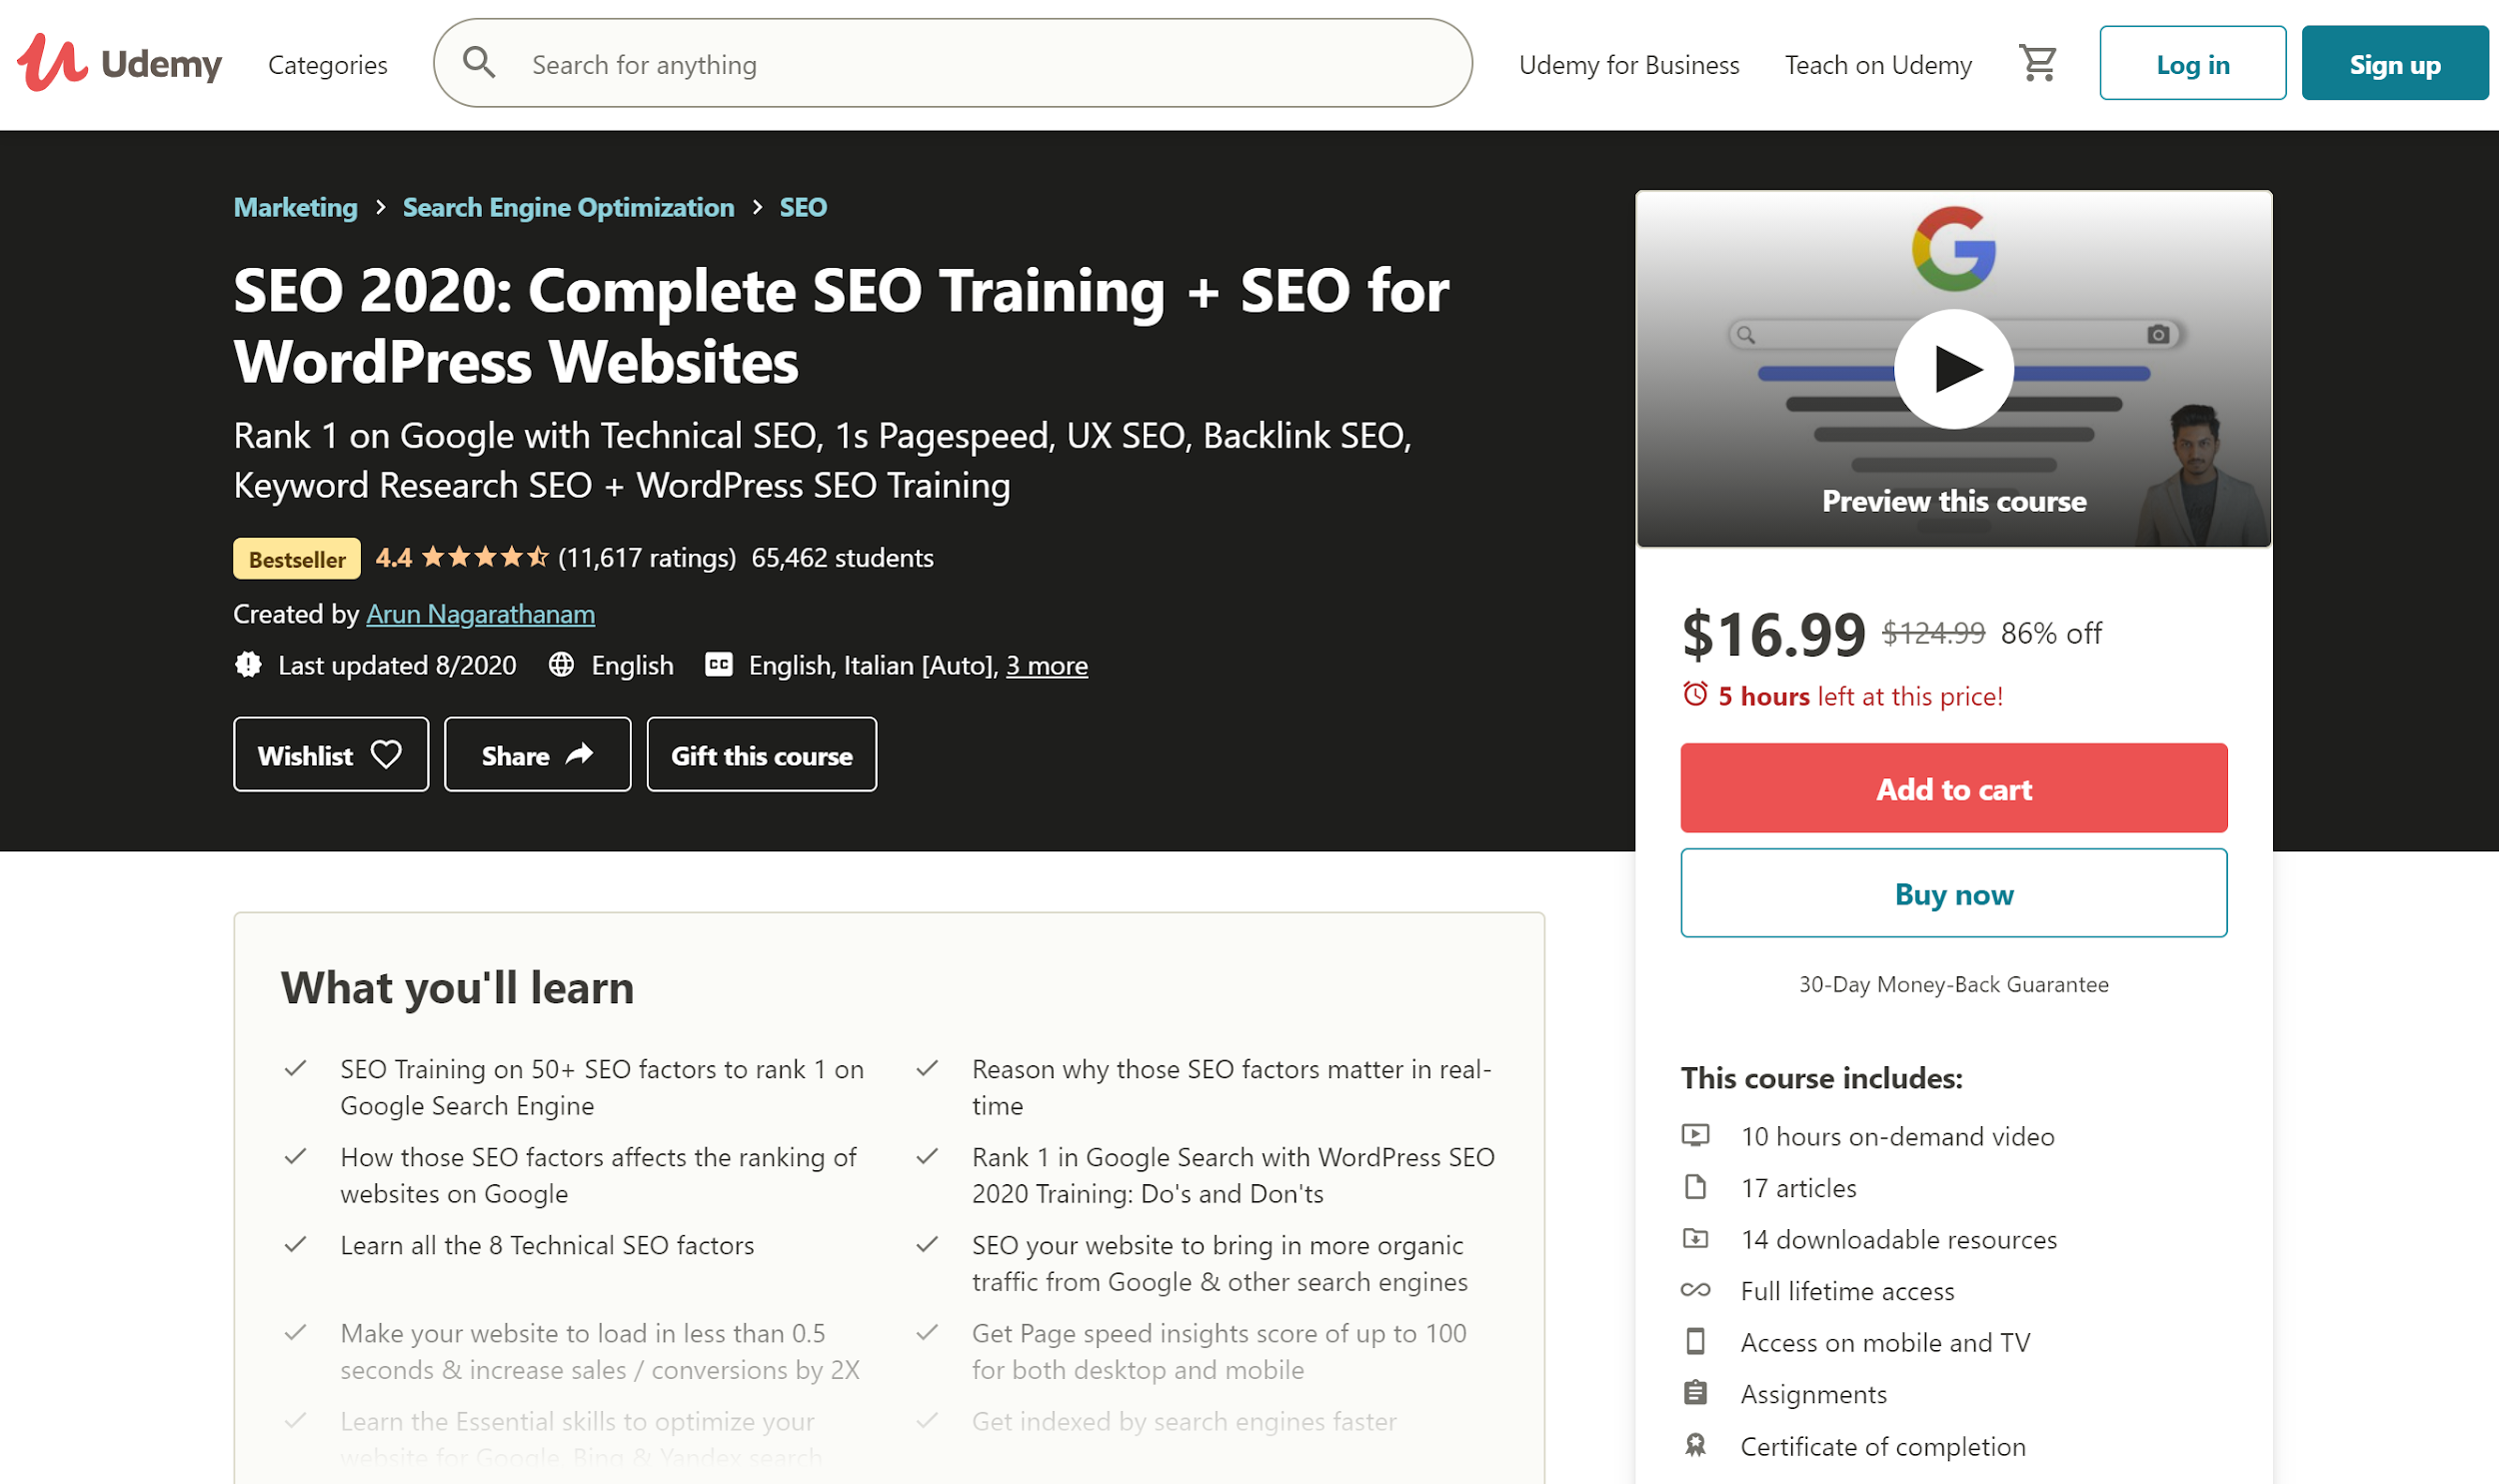 Udemy SEO: Complete SEO Training + SEO for WordPress Websites